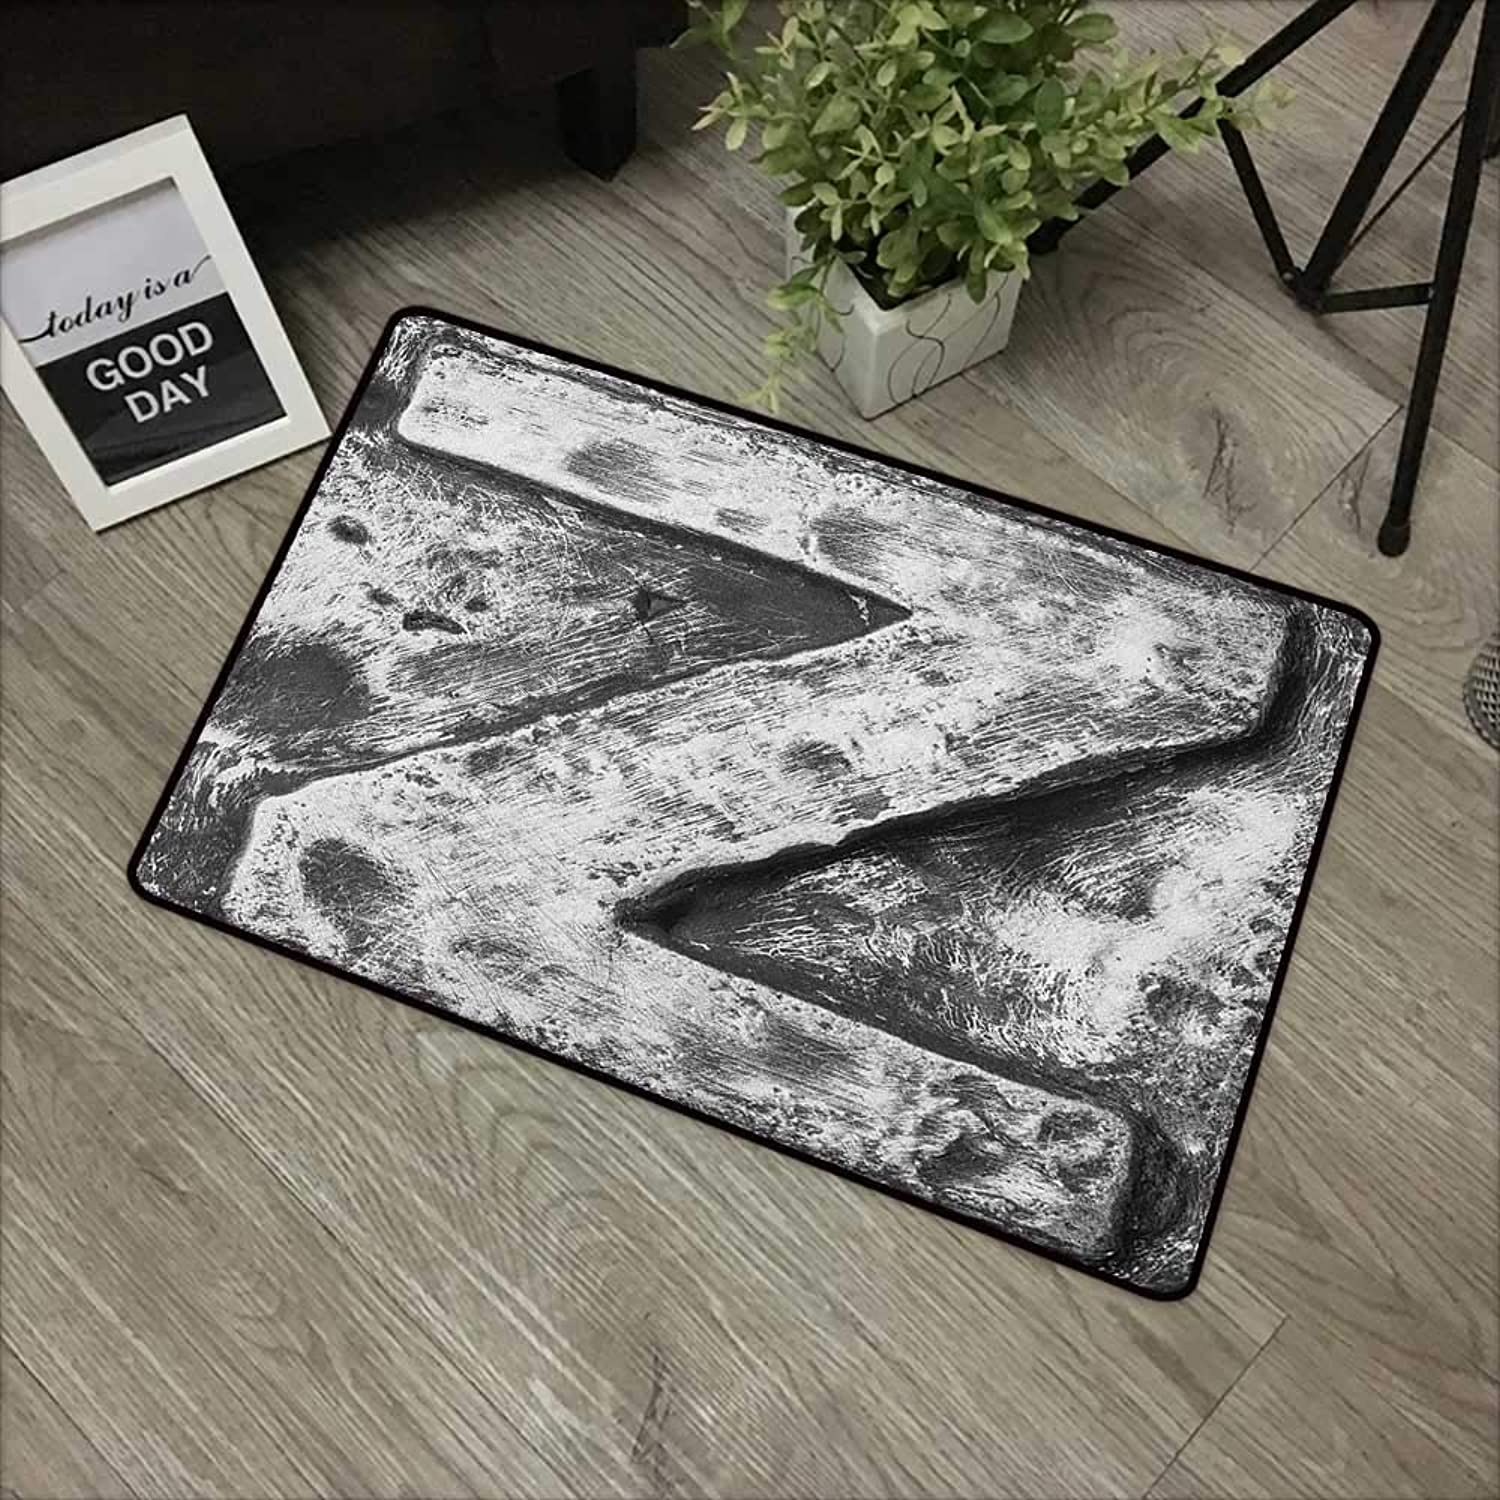 Printed Door mat W35 x L59 INCH Letter Z,Capital Z Letter Name Identity Initials VIP Rusty Tone Effects Aged Look Print, Black Grey Easy to Clean, no Deformation, no Fading Non-Slip Door Mat Carpet